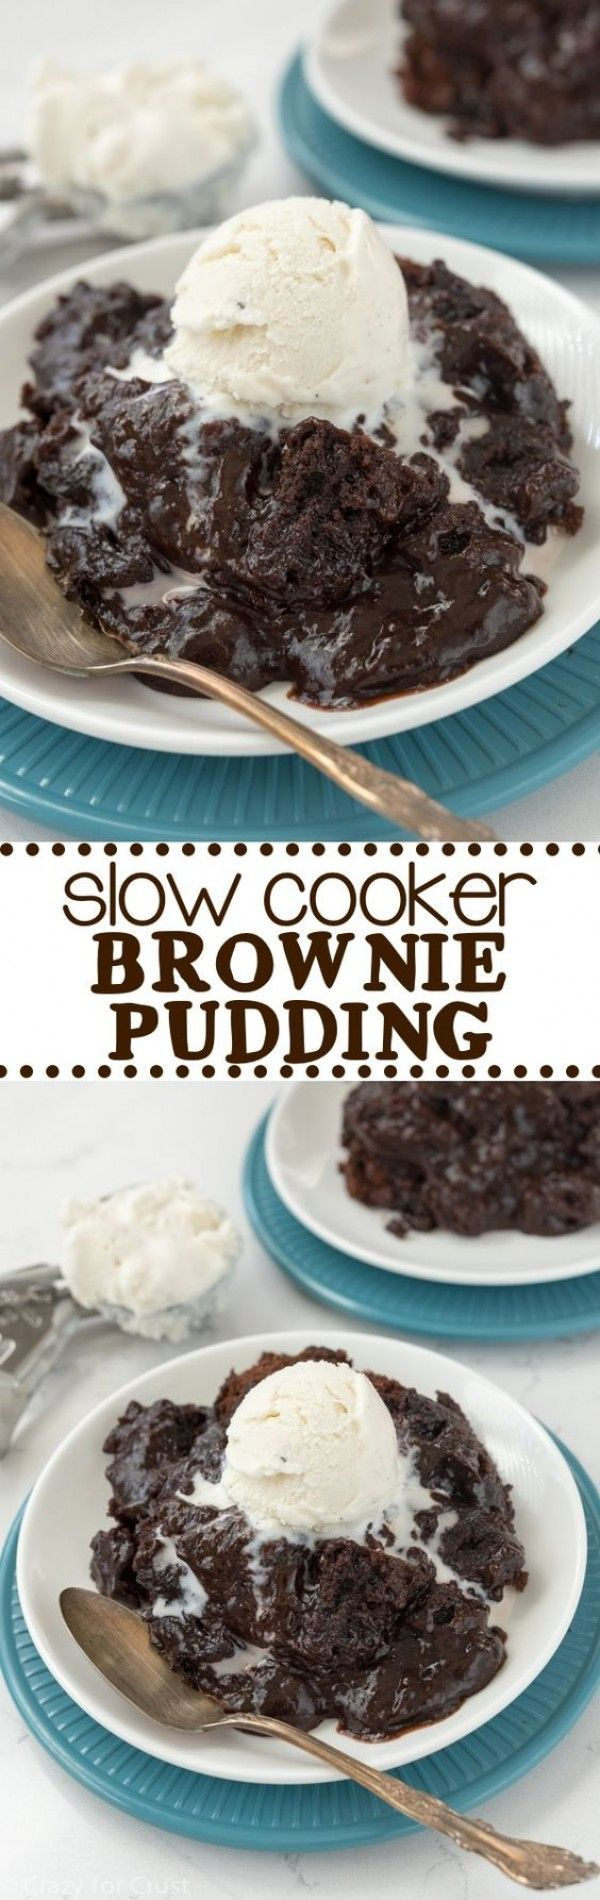 Get the recipe ♥ Slow Cooker Brownie Pudding #besttoeat @recipes_to_go